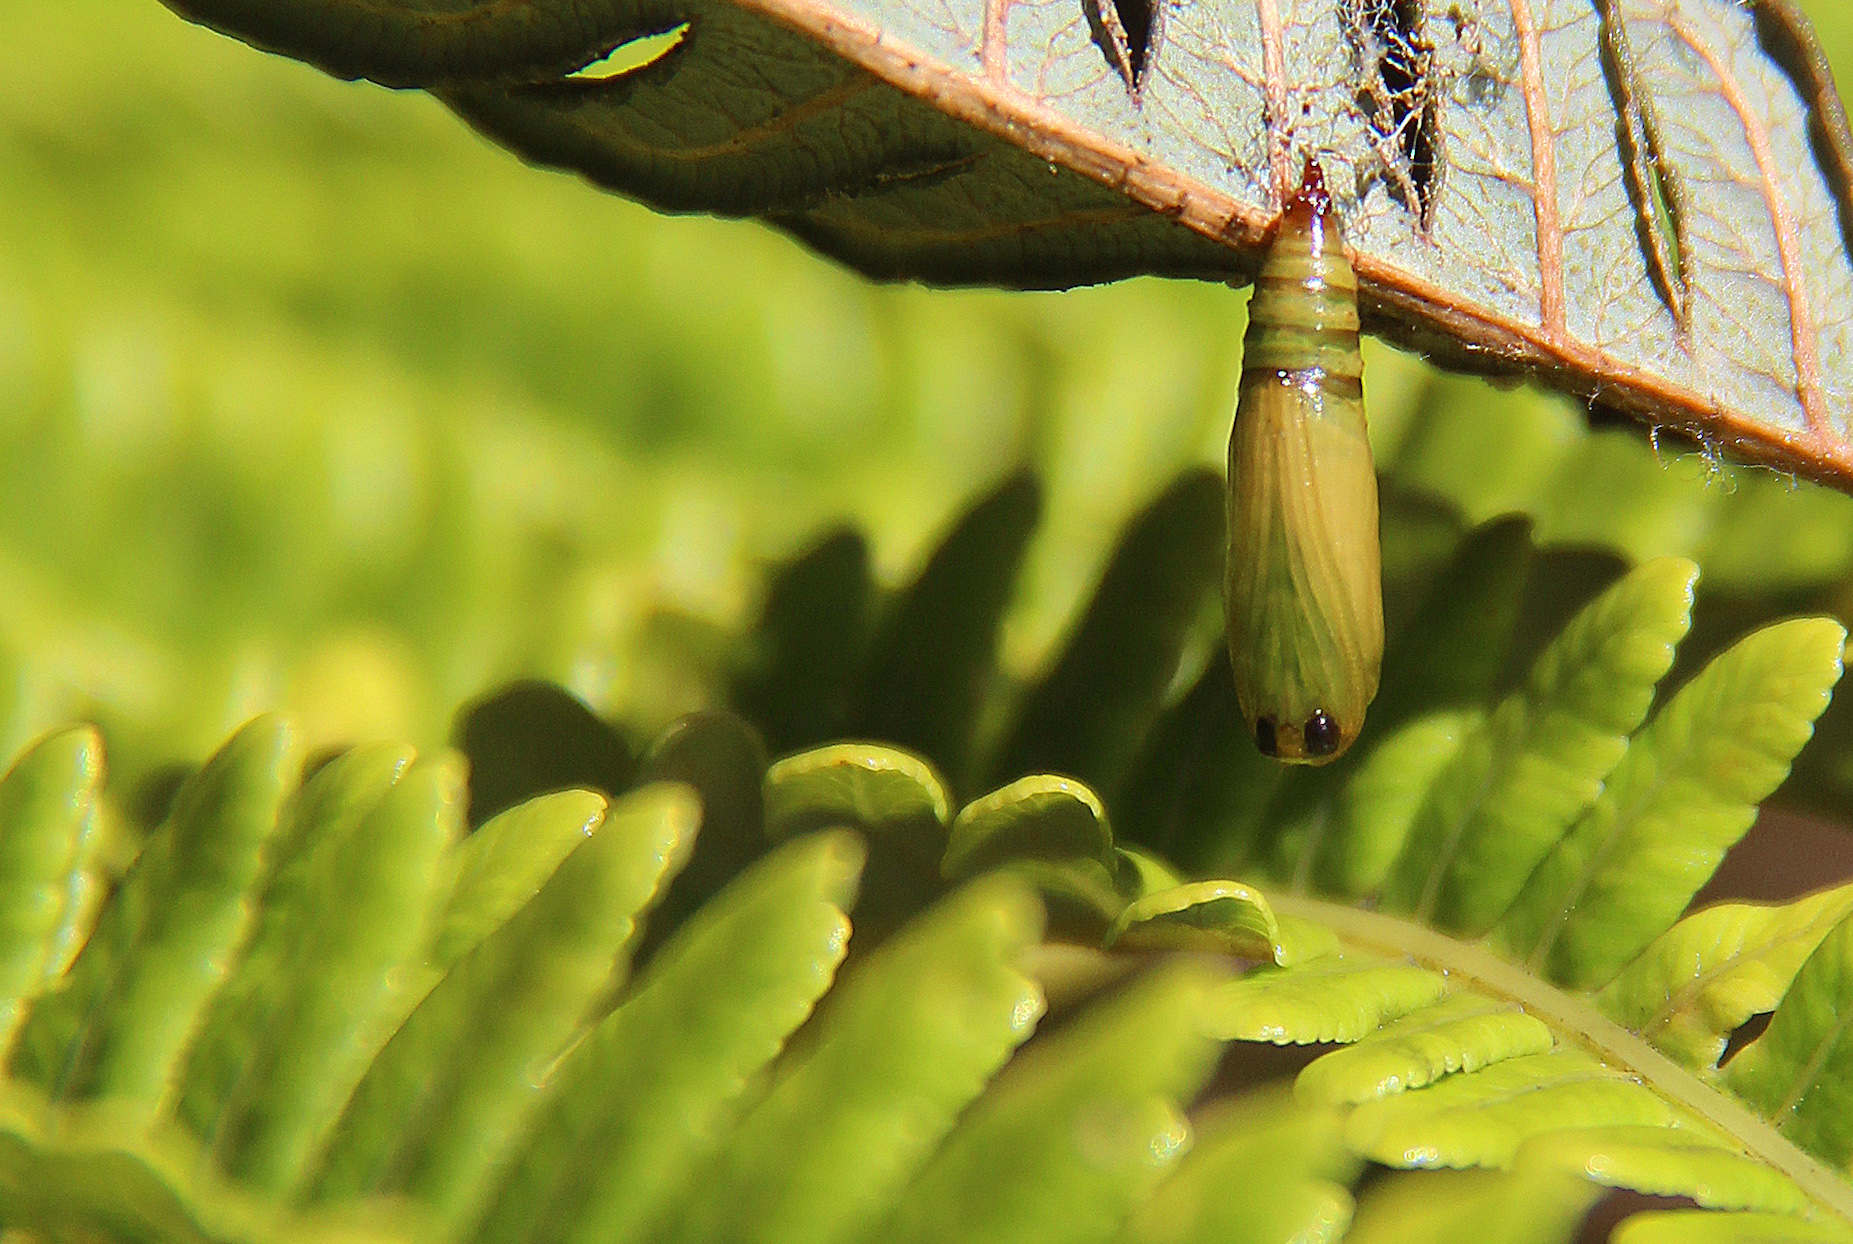 While most people probably view caterpillars as benign creatures, these carnivorous caterpillars are on the hunt.